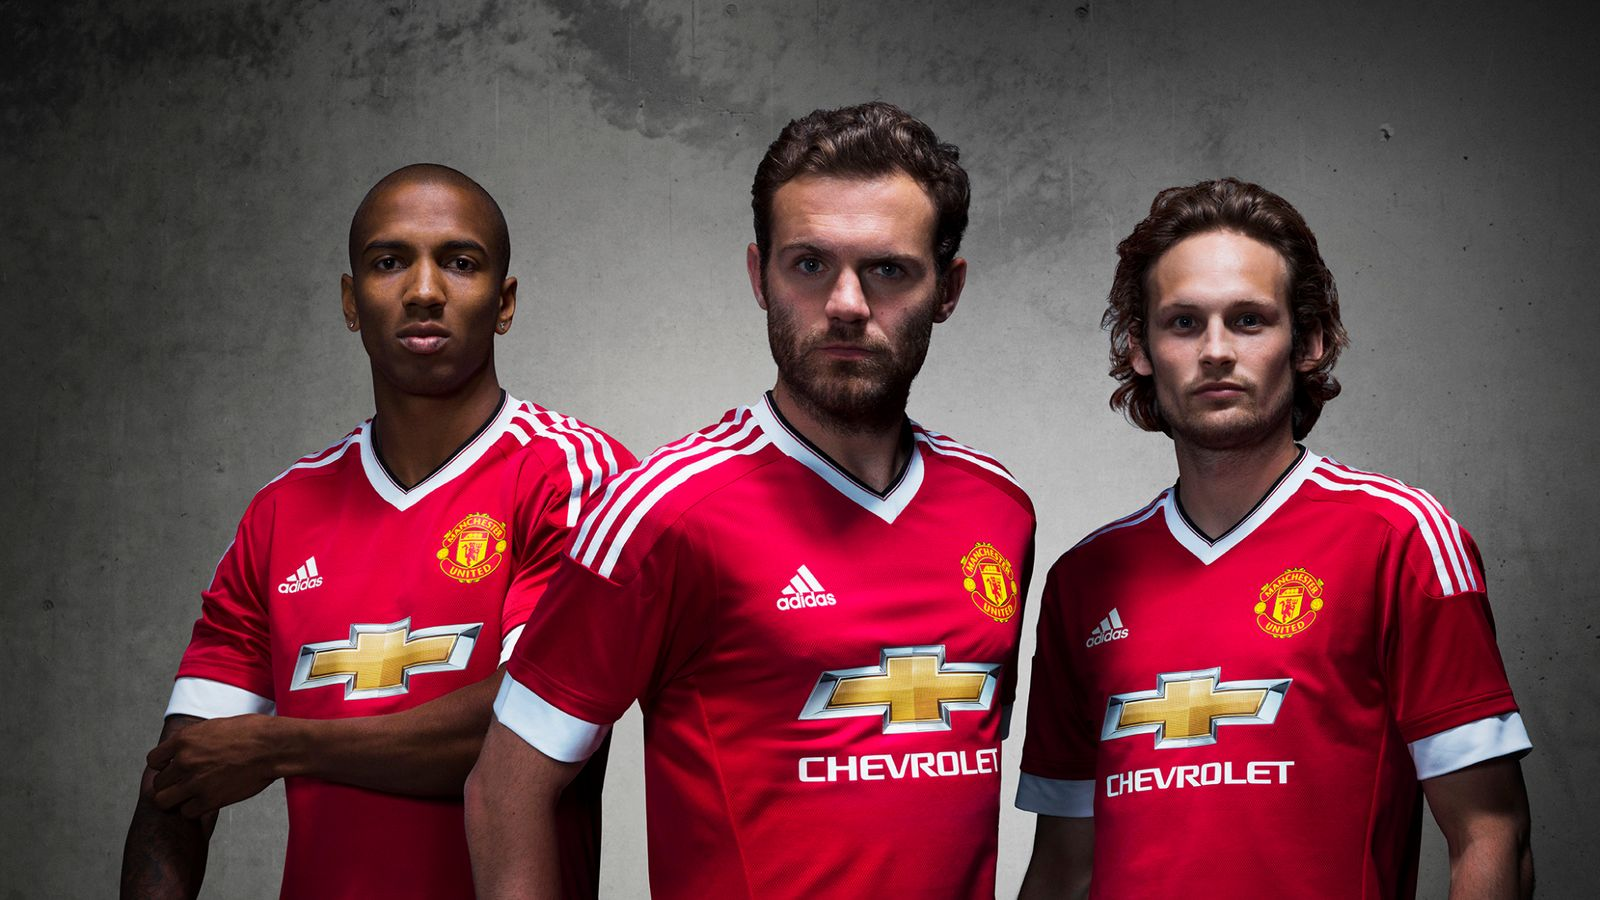 fee47183b Manchester United unveil new adidas kit for 2015/16 season | Football News  | Sky Sports